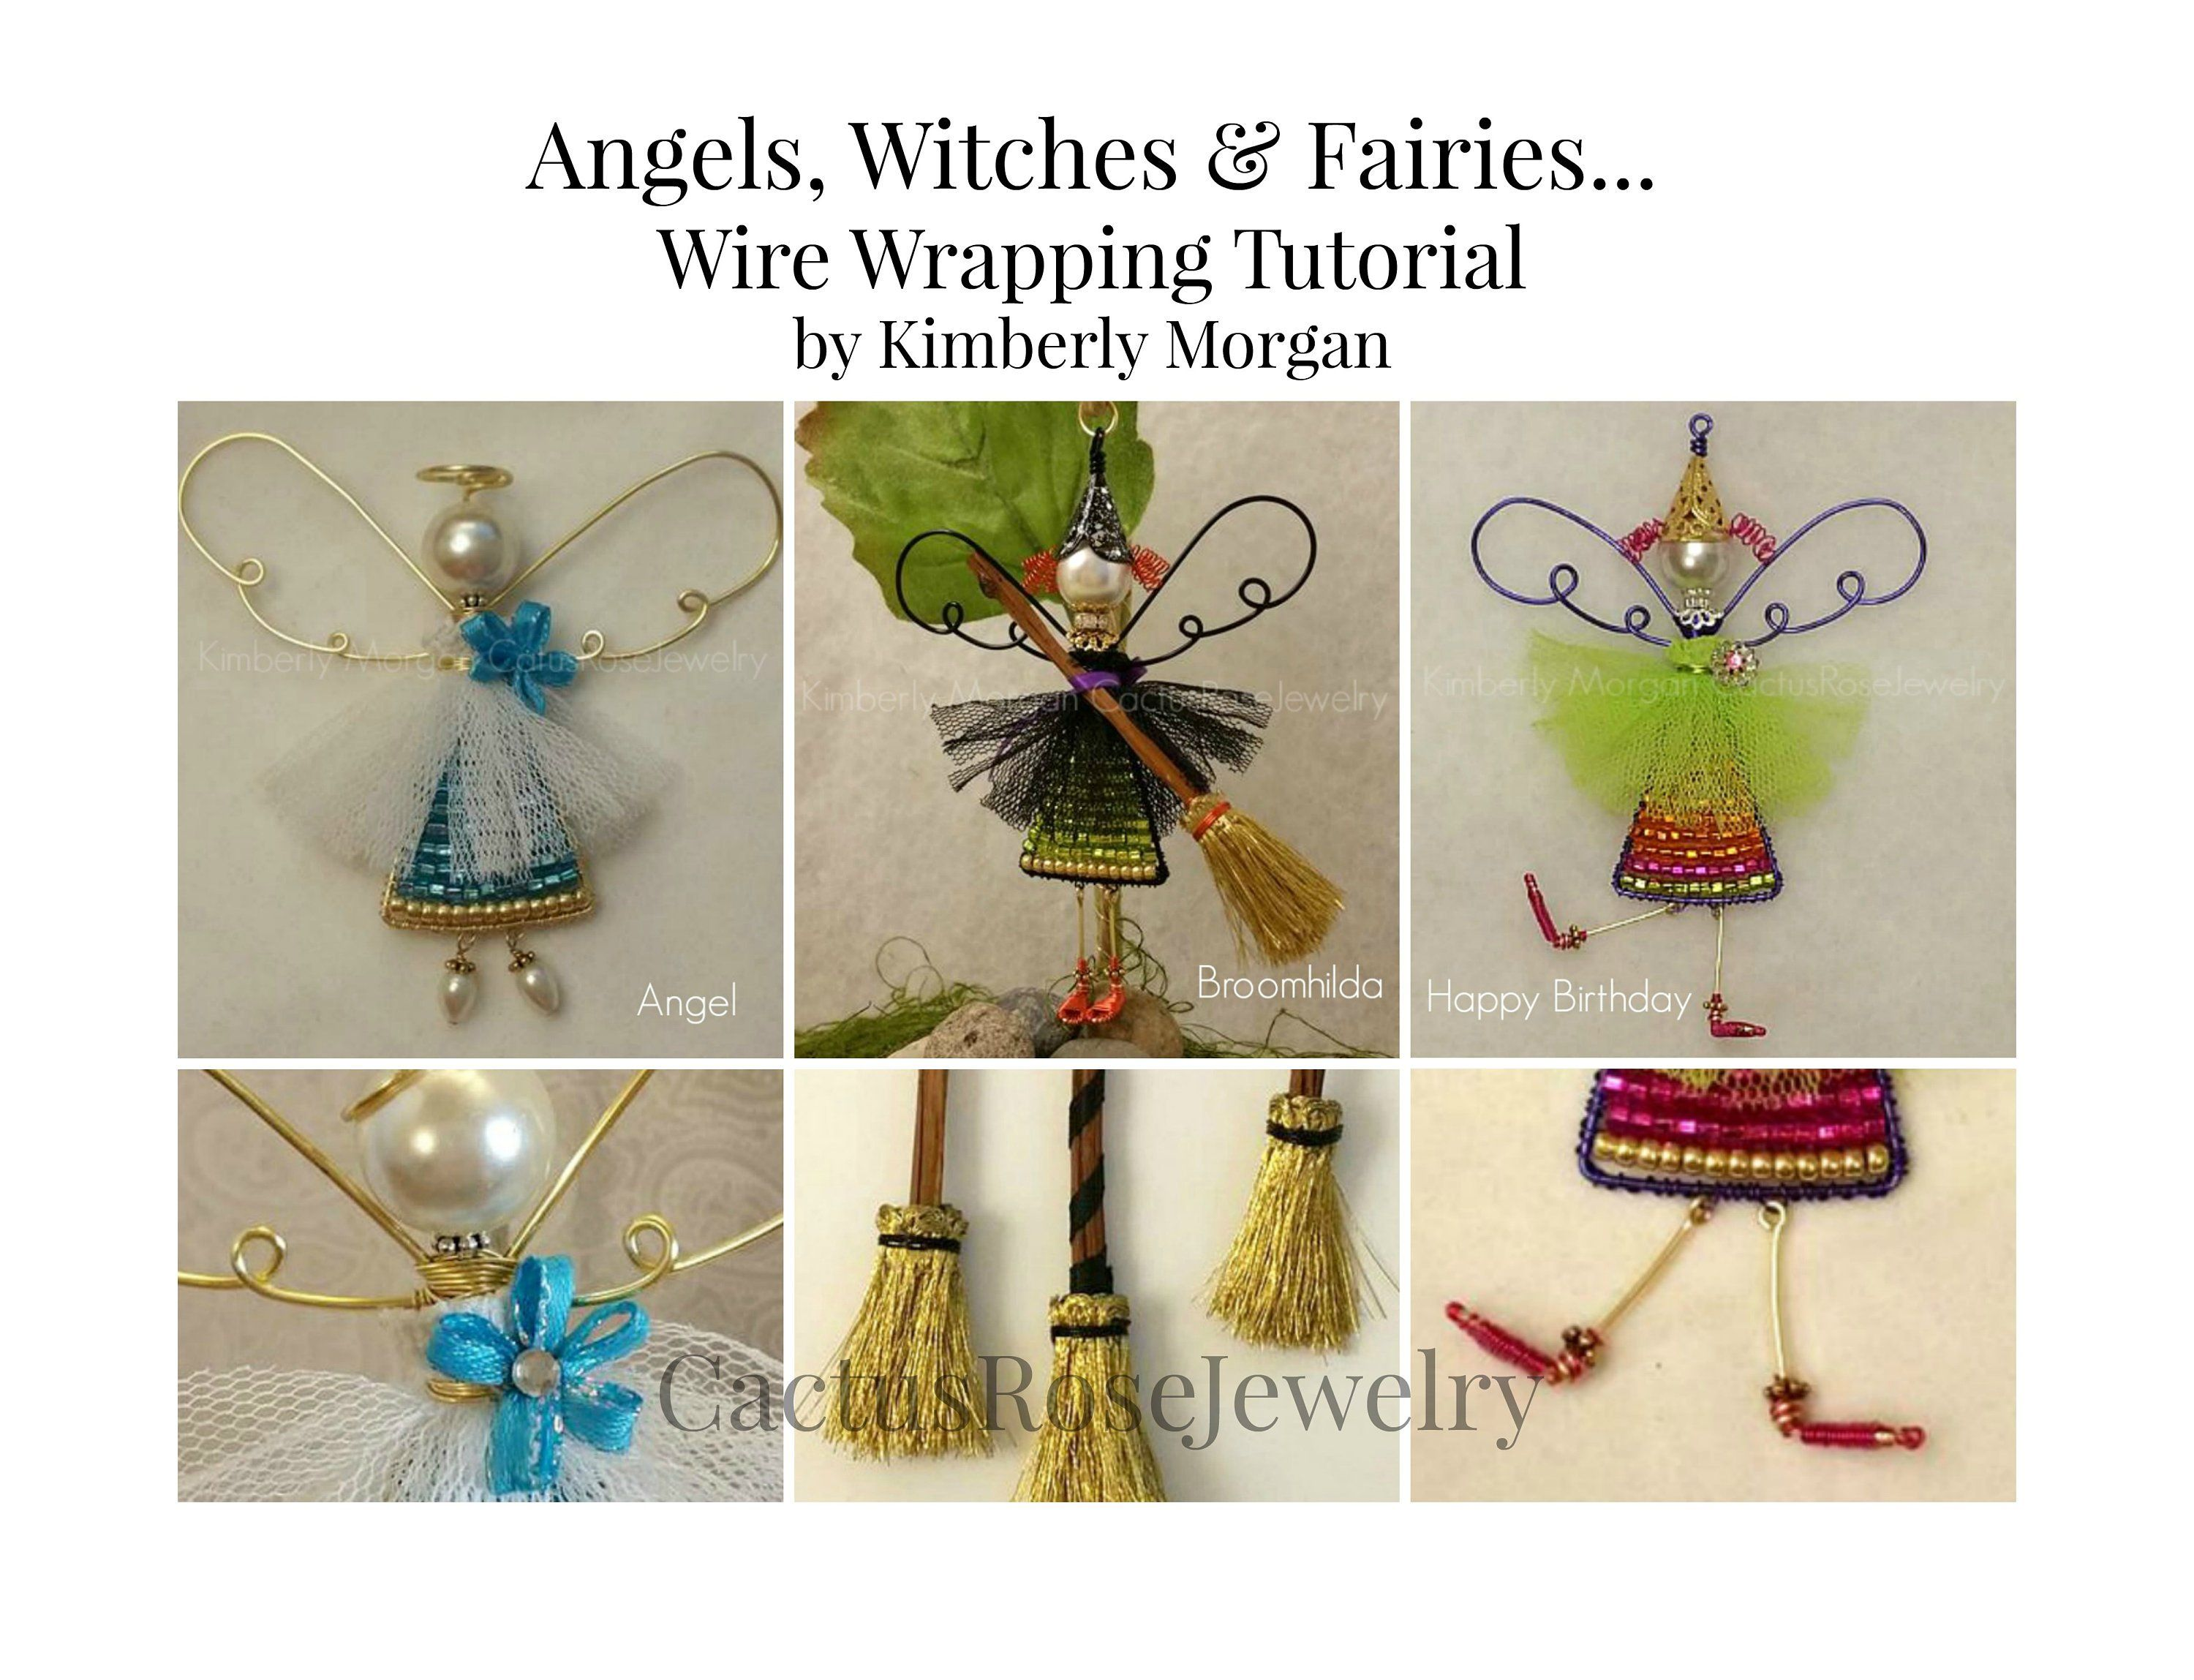 Angels Witches And Fairies Wire Wrapping Tutorial Instant Etsy In 2021 Wire Ornaments Diy Crafts Jewelry Holiday Beading